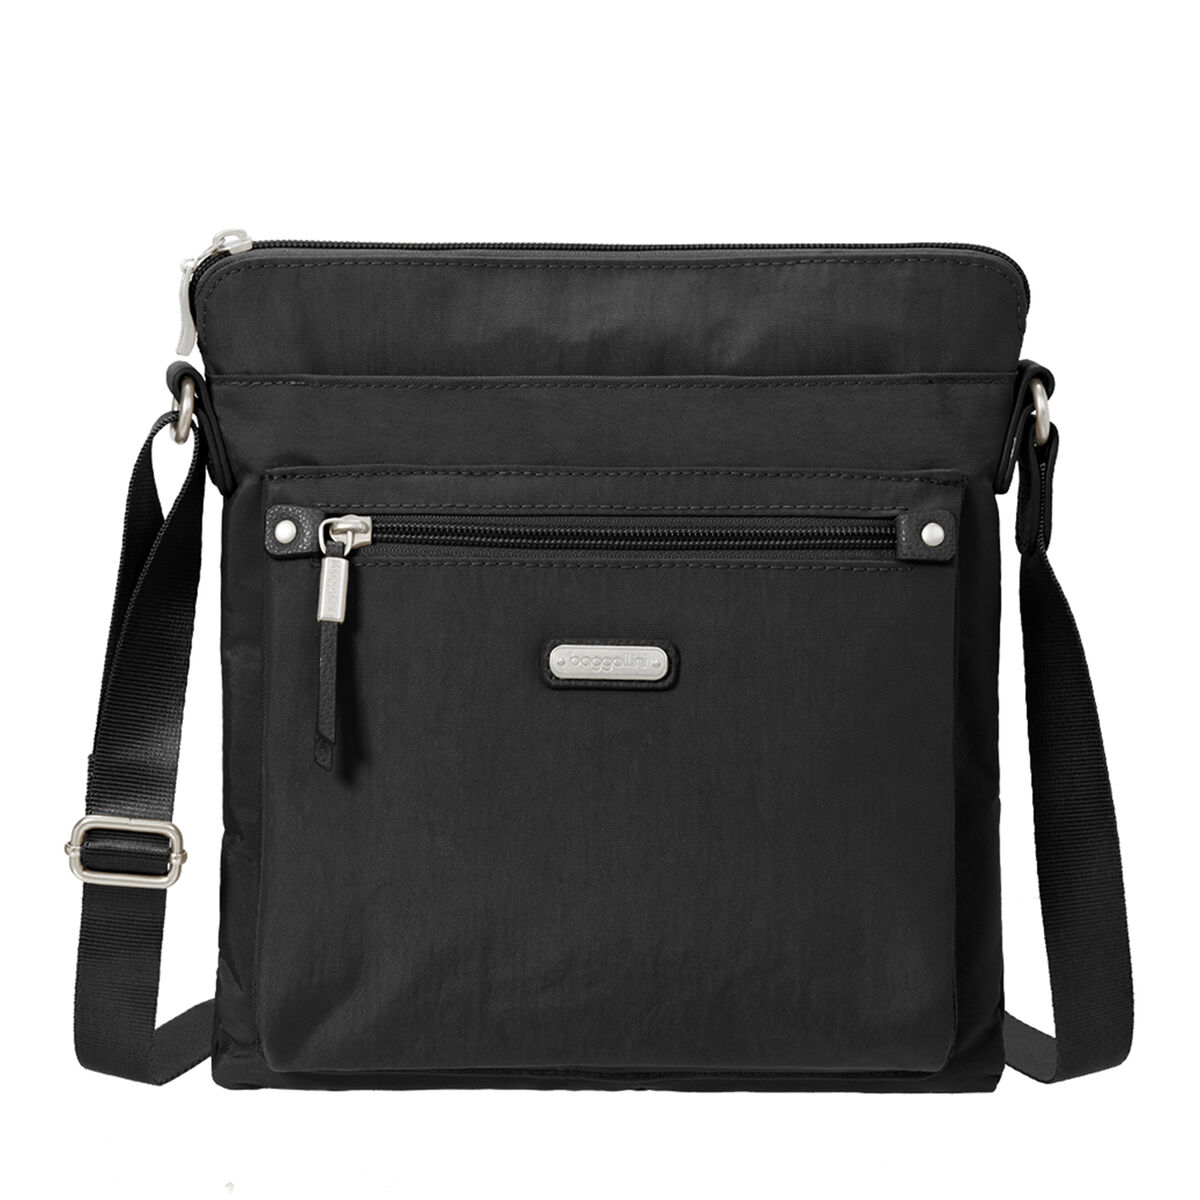 gumption medium tote